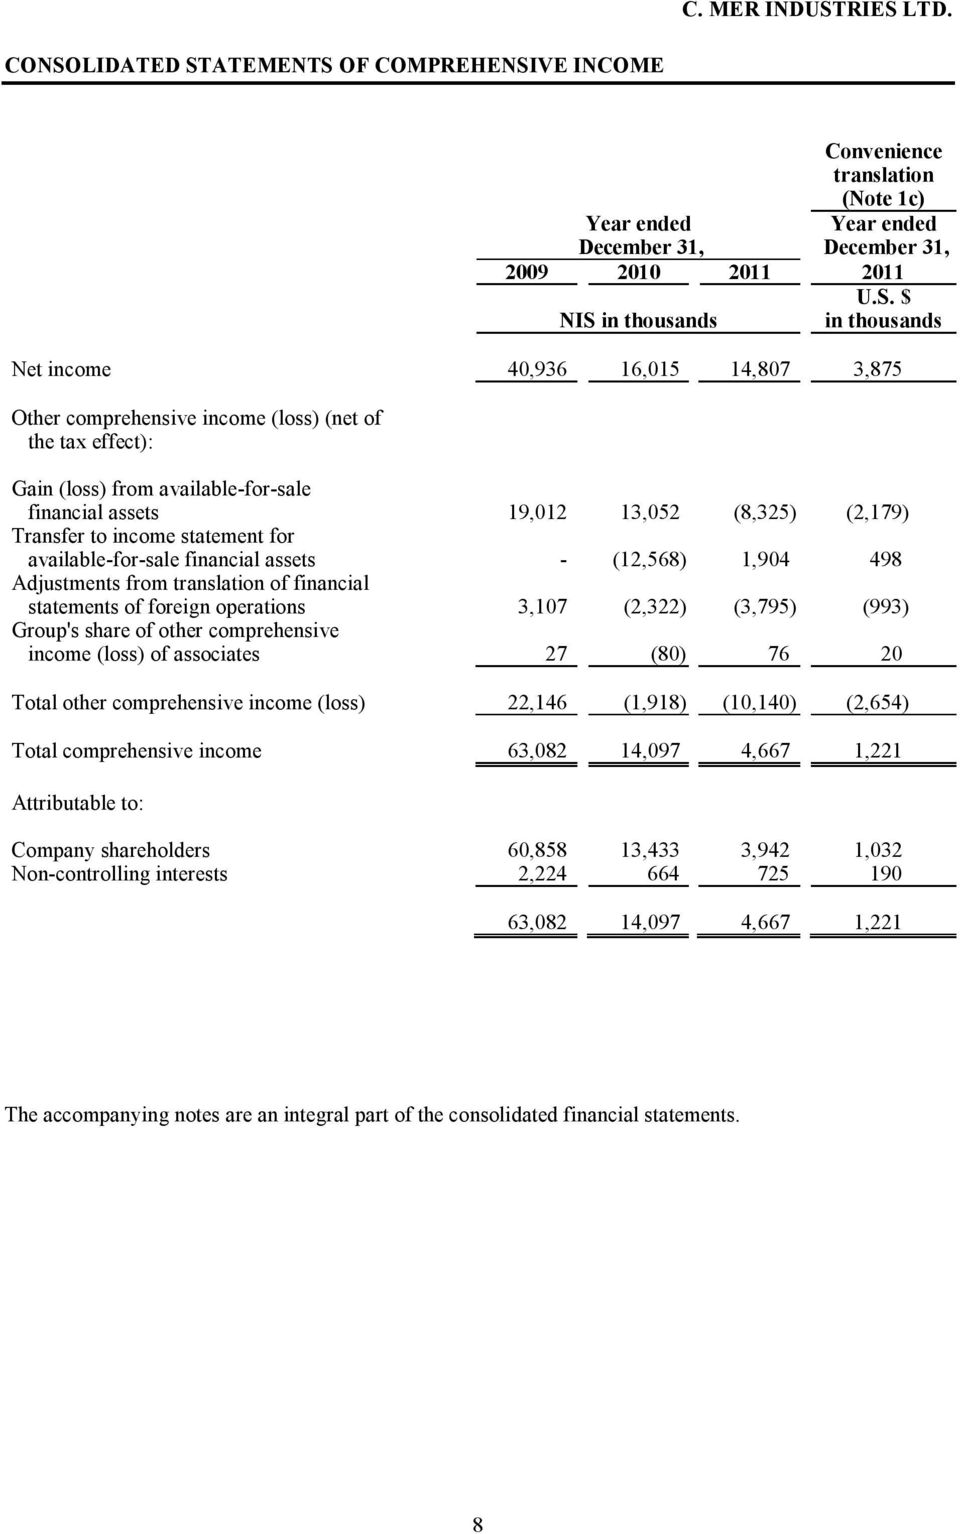 assets - (12,568) 1,904 498 Adjustments from translation of financial statements of foreign operations 3,107 (2,322) (3,795) (993) Group's share of other comprehensive income (loss) of associates 27